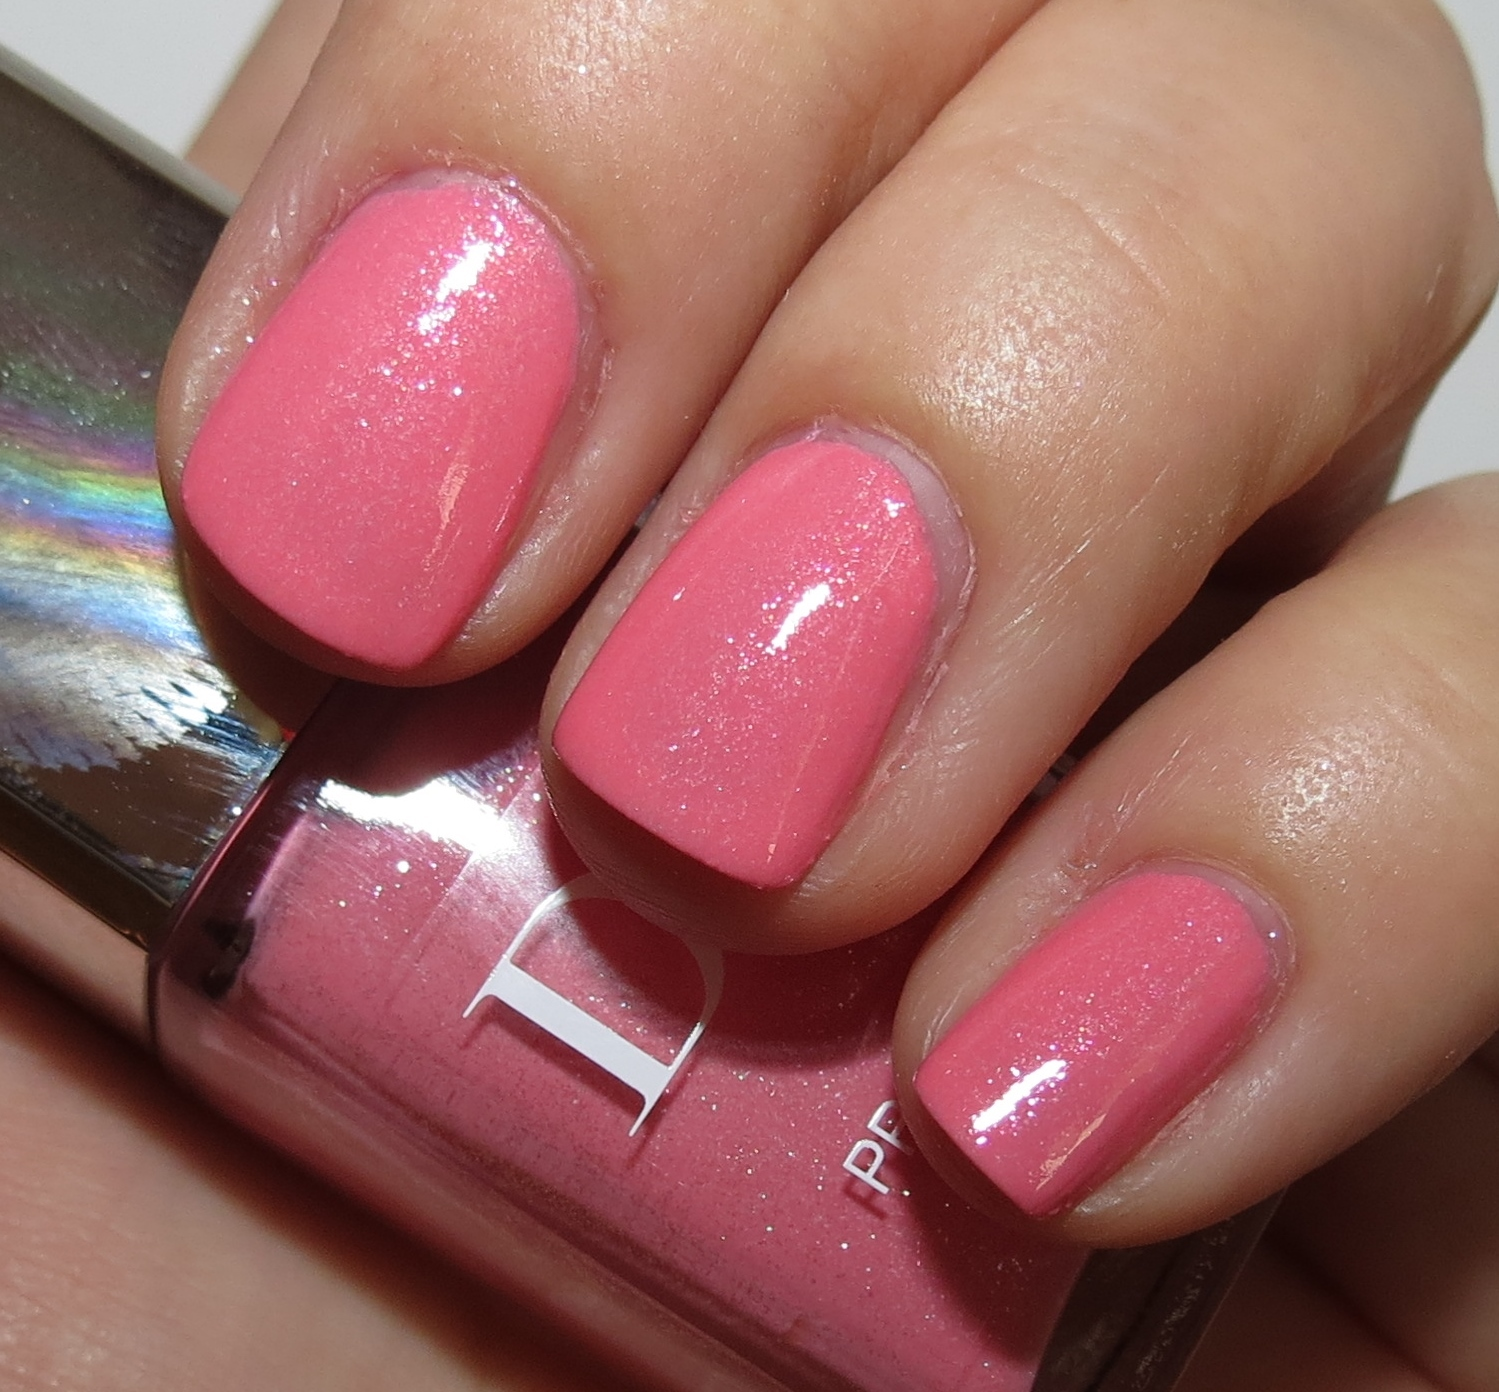 Top 40 nail polishes for fair skin tone nail design ideaz nail polishes prinsesfo Images